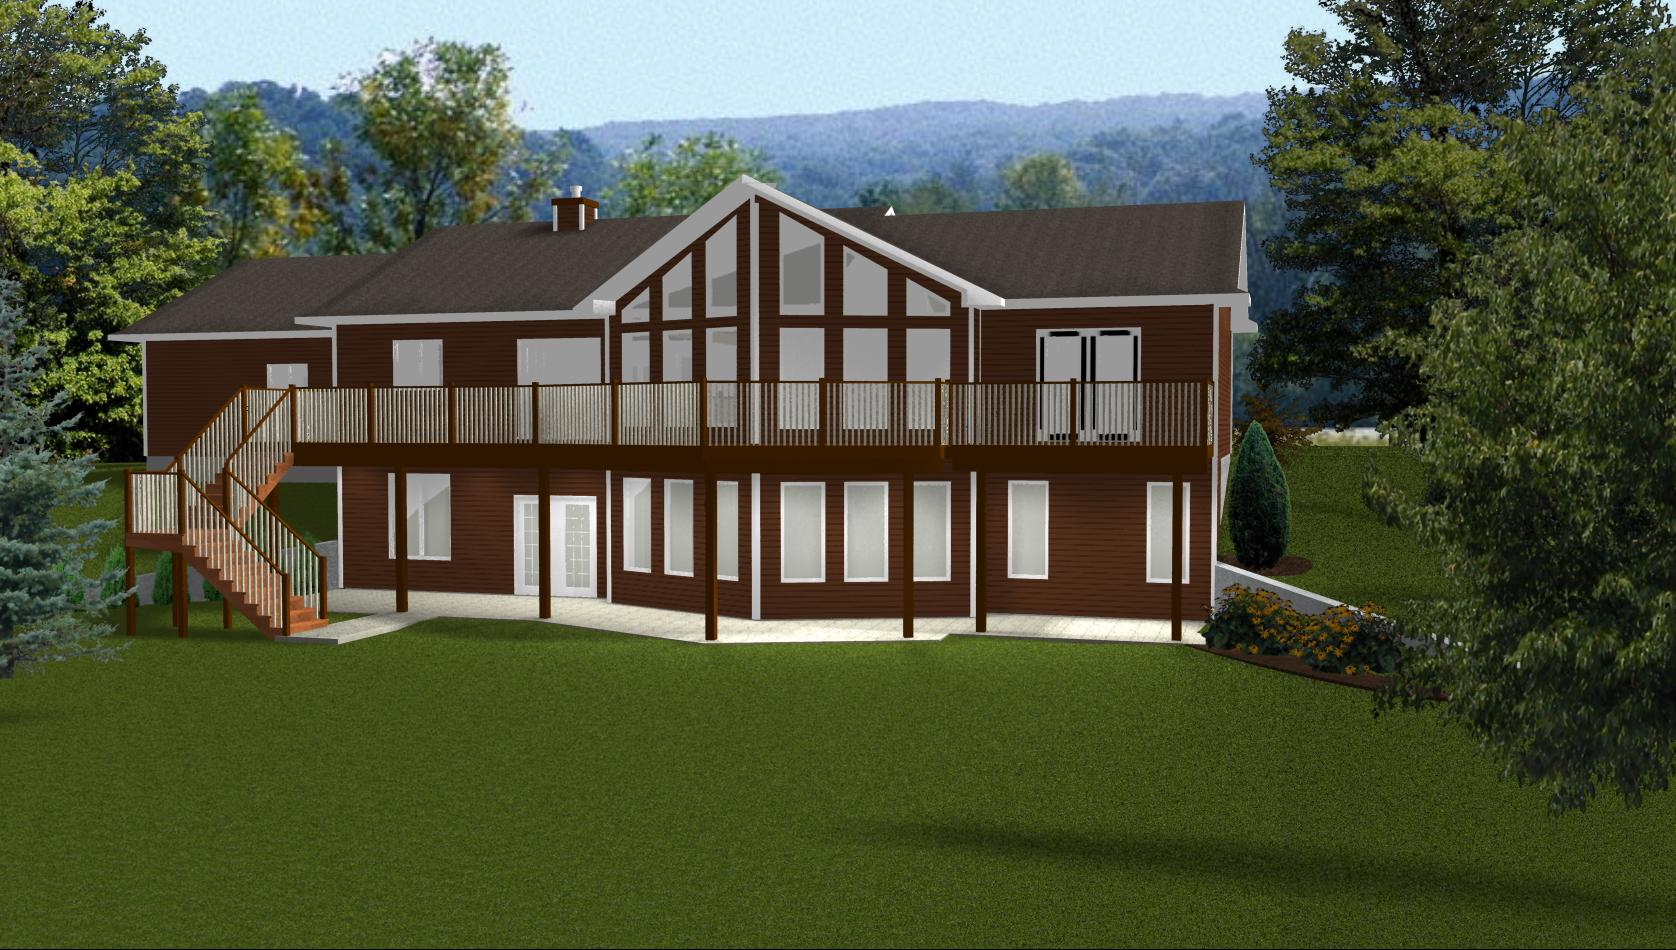 Walkout Basement Ideas Floor Plans Ranch Style House Ranch Style House Plans With